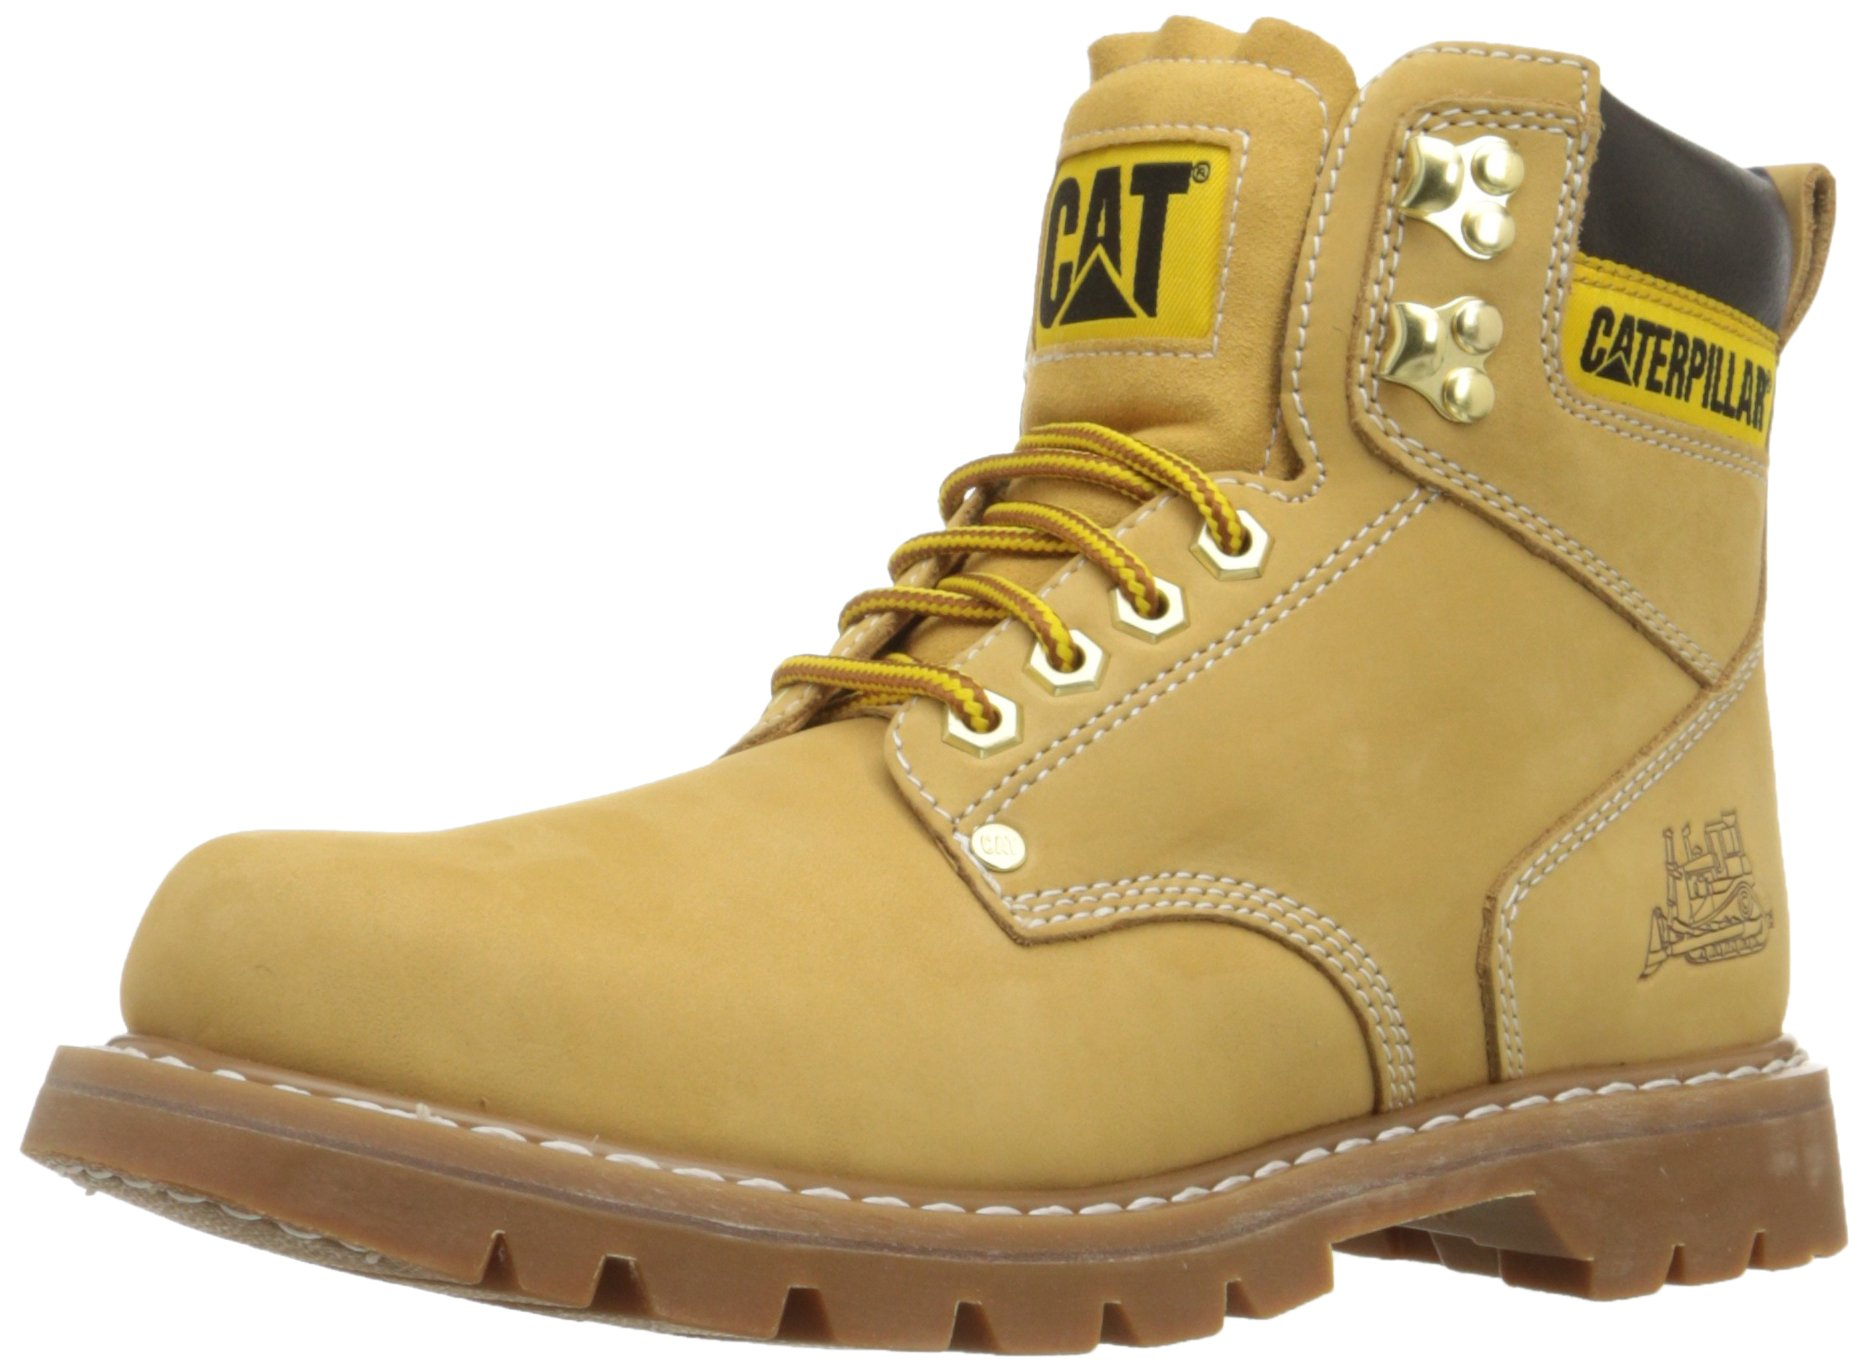 Caterpillar Men's 2nd Shift 6'' Plain Soft Toe Boot,Honey,8.5 M US by Caterpillar